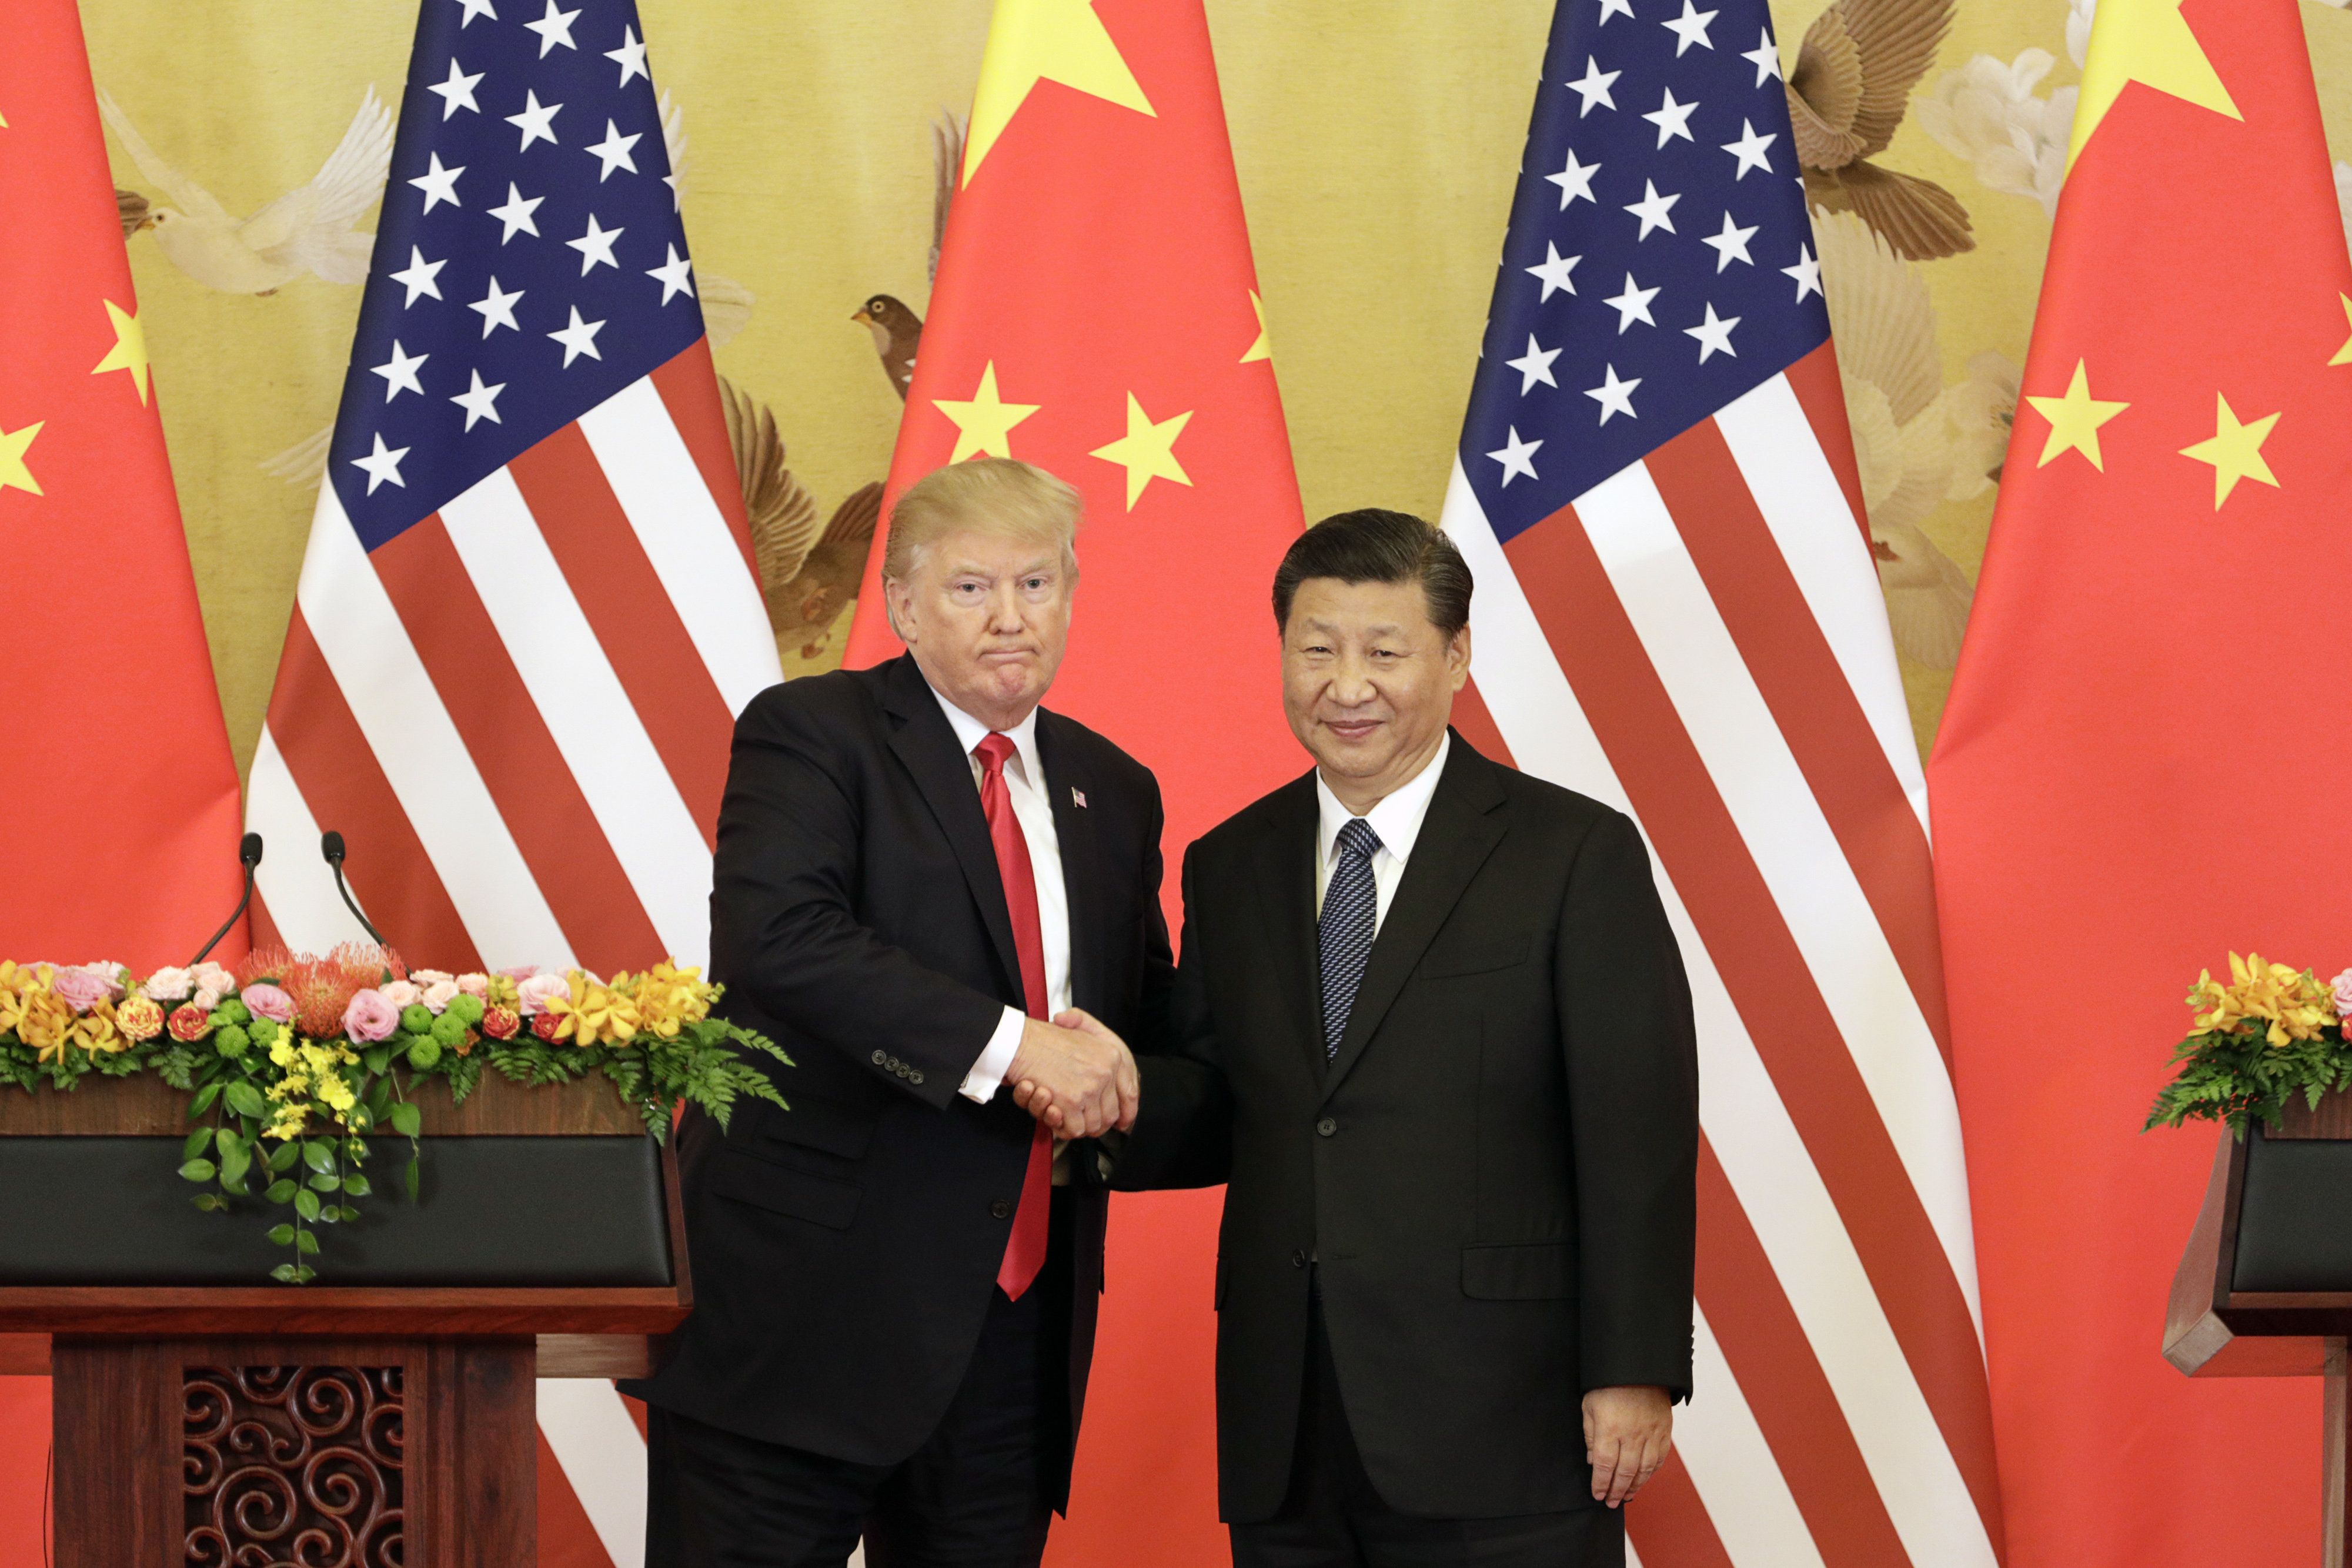 FILE: U.S. President Donald Trump, left, and Xi Jinping, China's president, shake hands during a news conference at the Great Hall of the People in Beijing, China, on Thursday, Nov. 9, 2017.  Sunday, January 20, 2019, marks the second anniversary of U.S. President Donald Trump's inauguration. Our editors select the best archive images looking back over Trumps second year in office. Photographer: Qilai Shen/Bloomberg via Getty Images